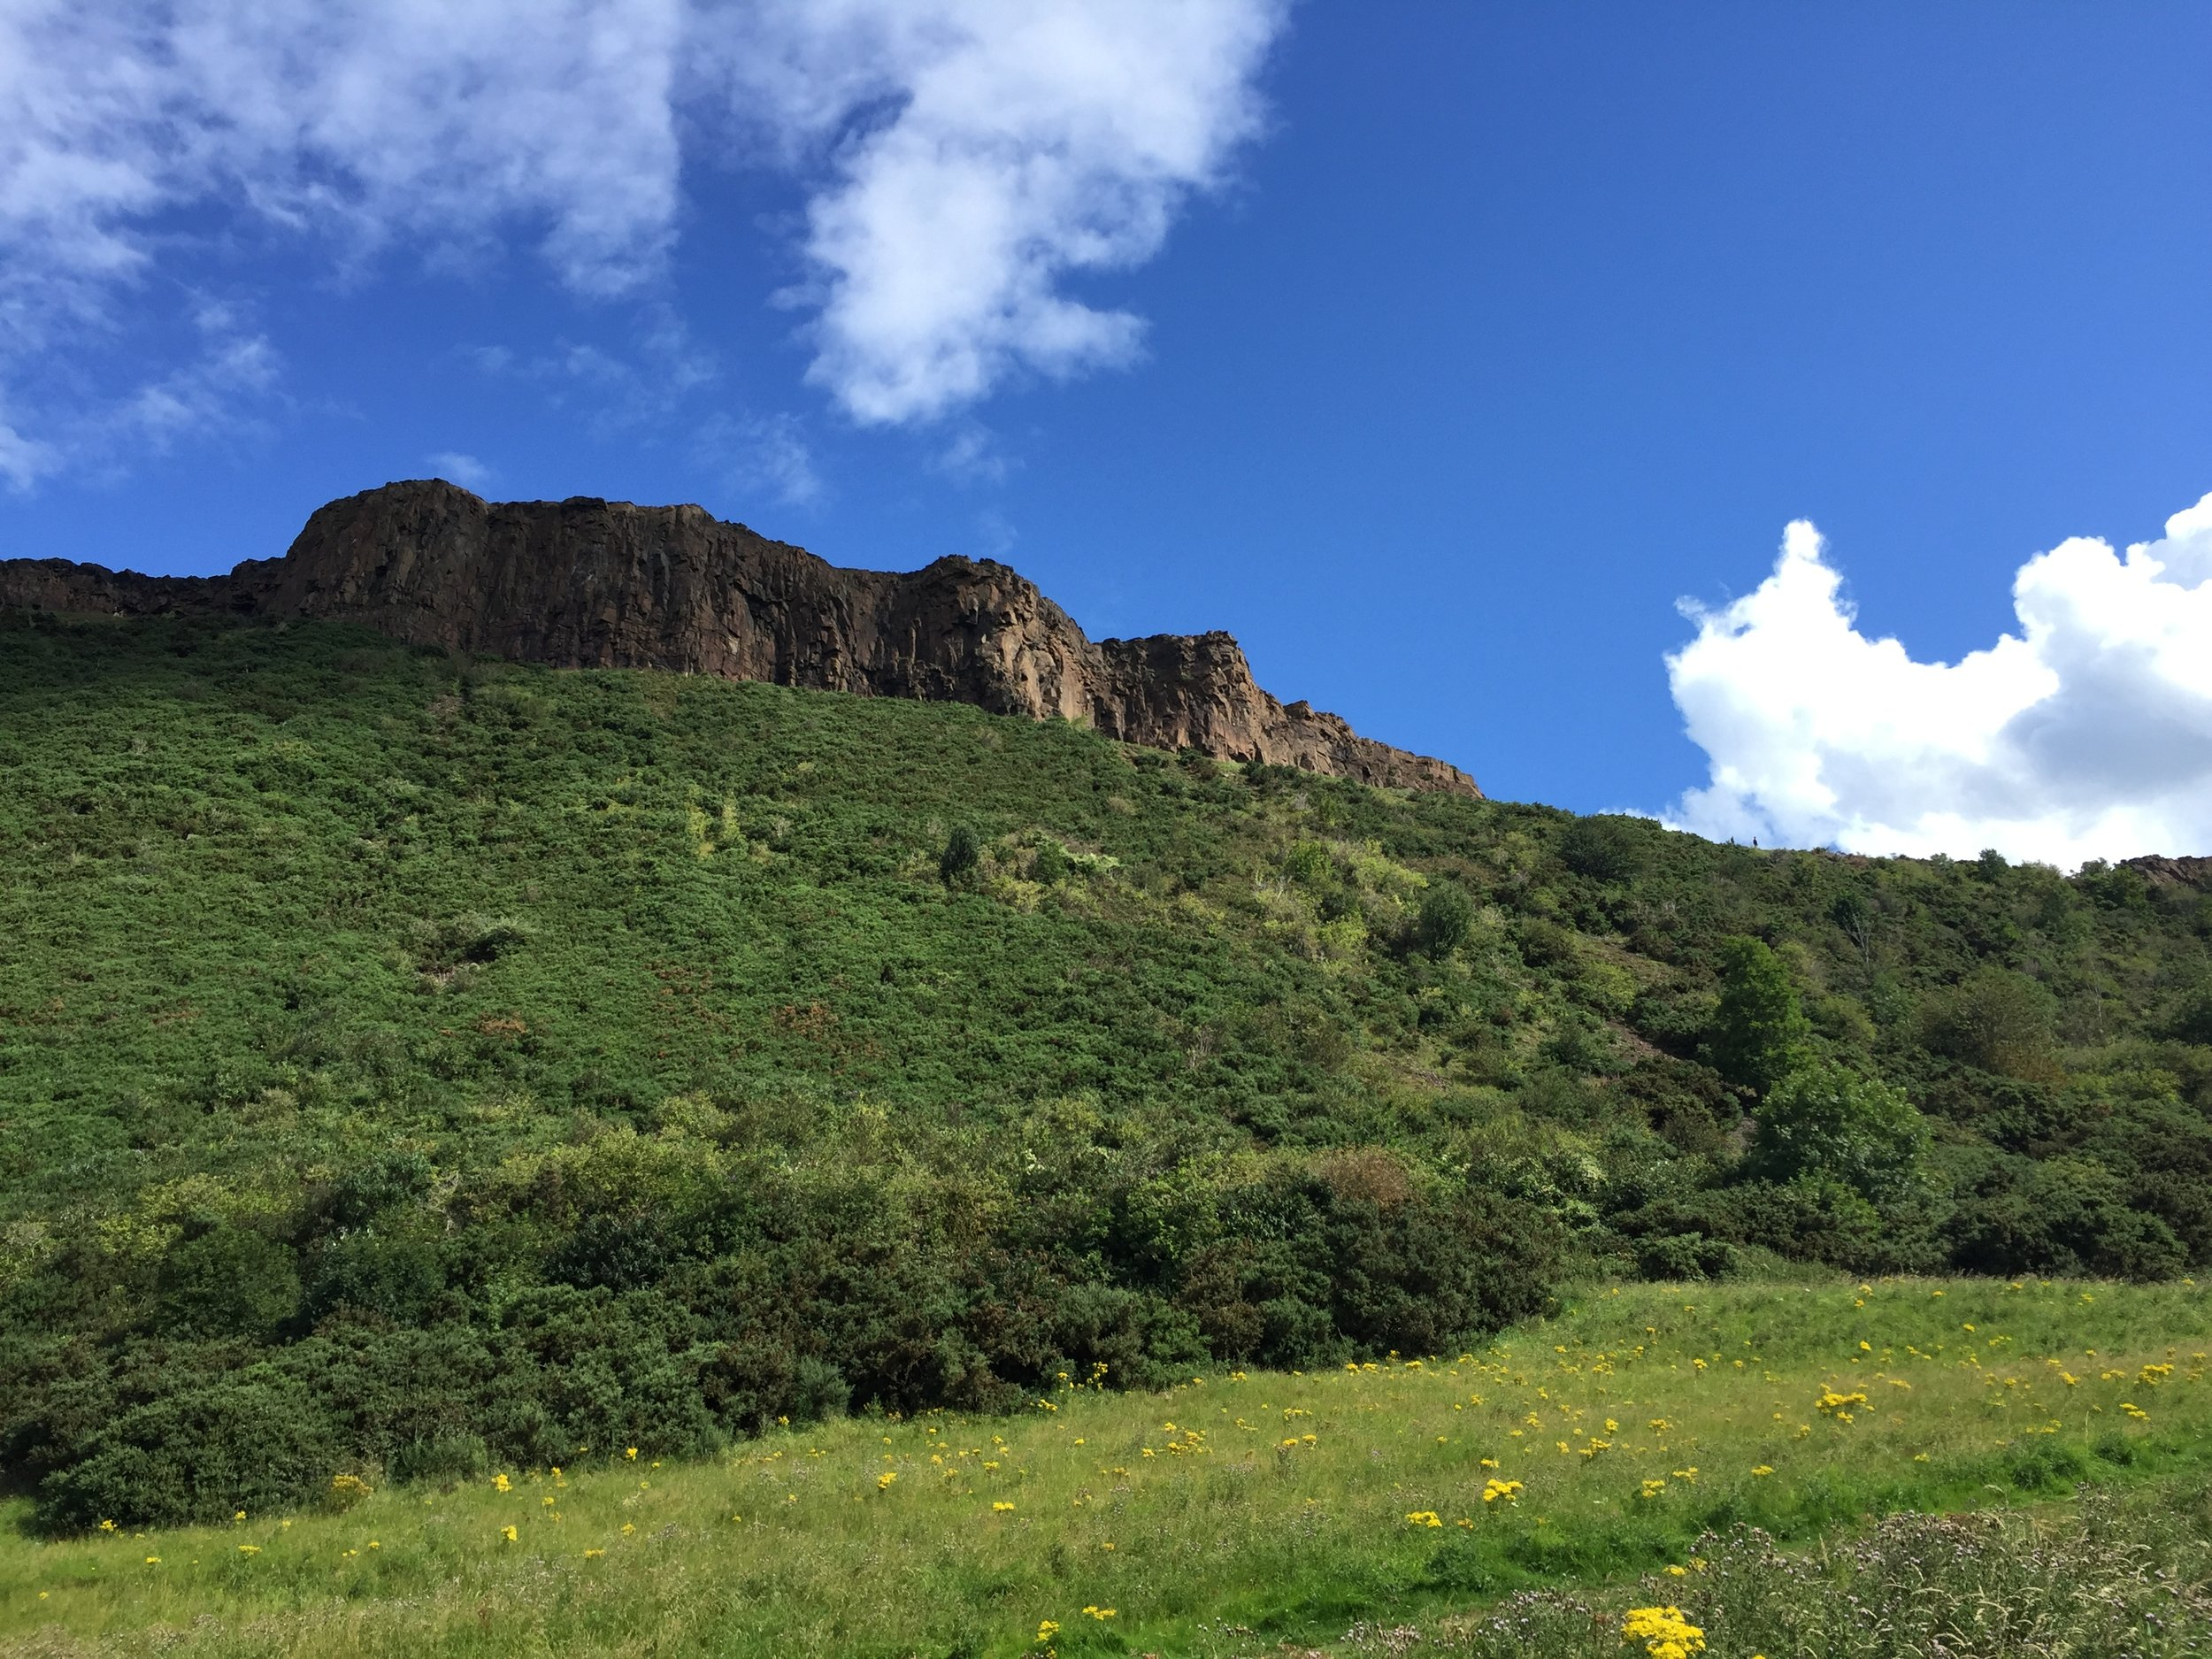 The cliffs of the Salisbury Crags.